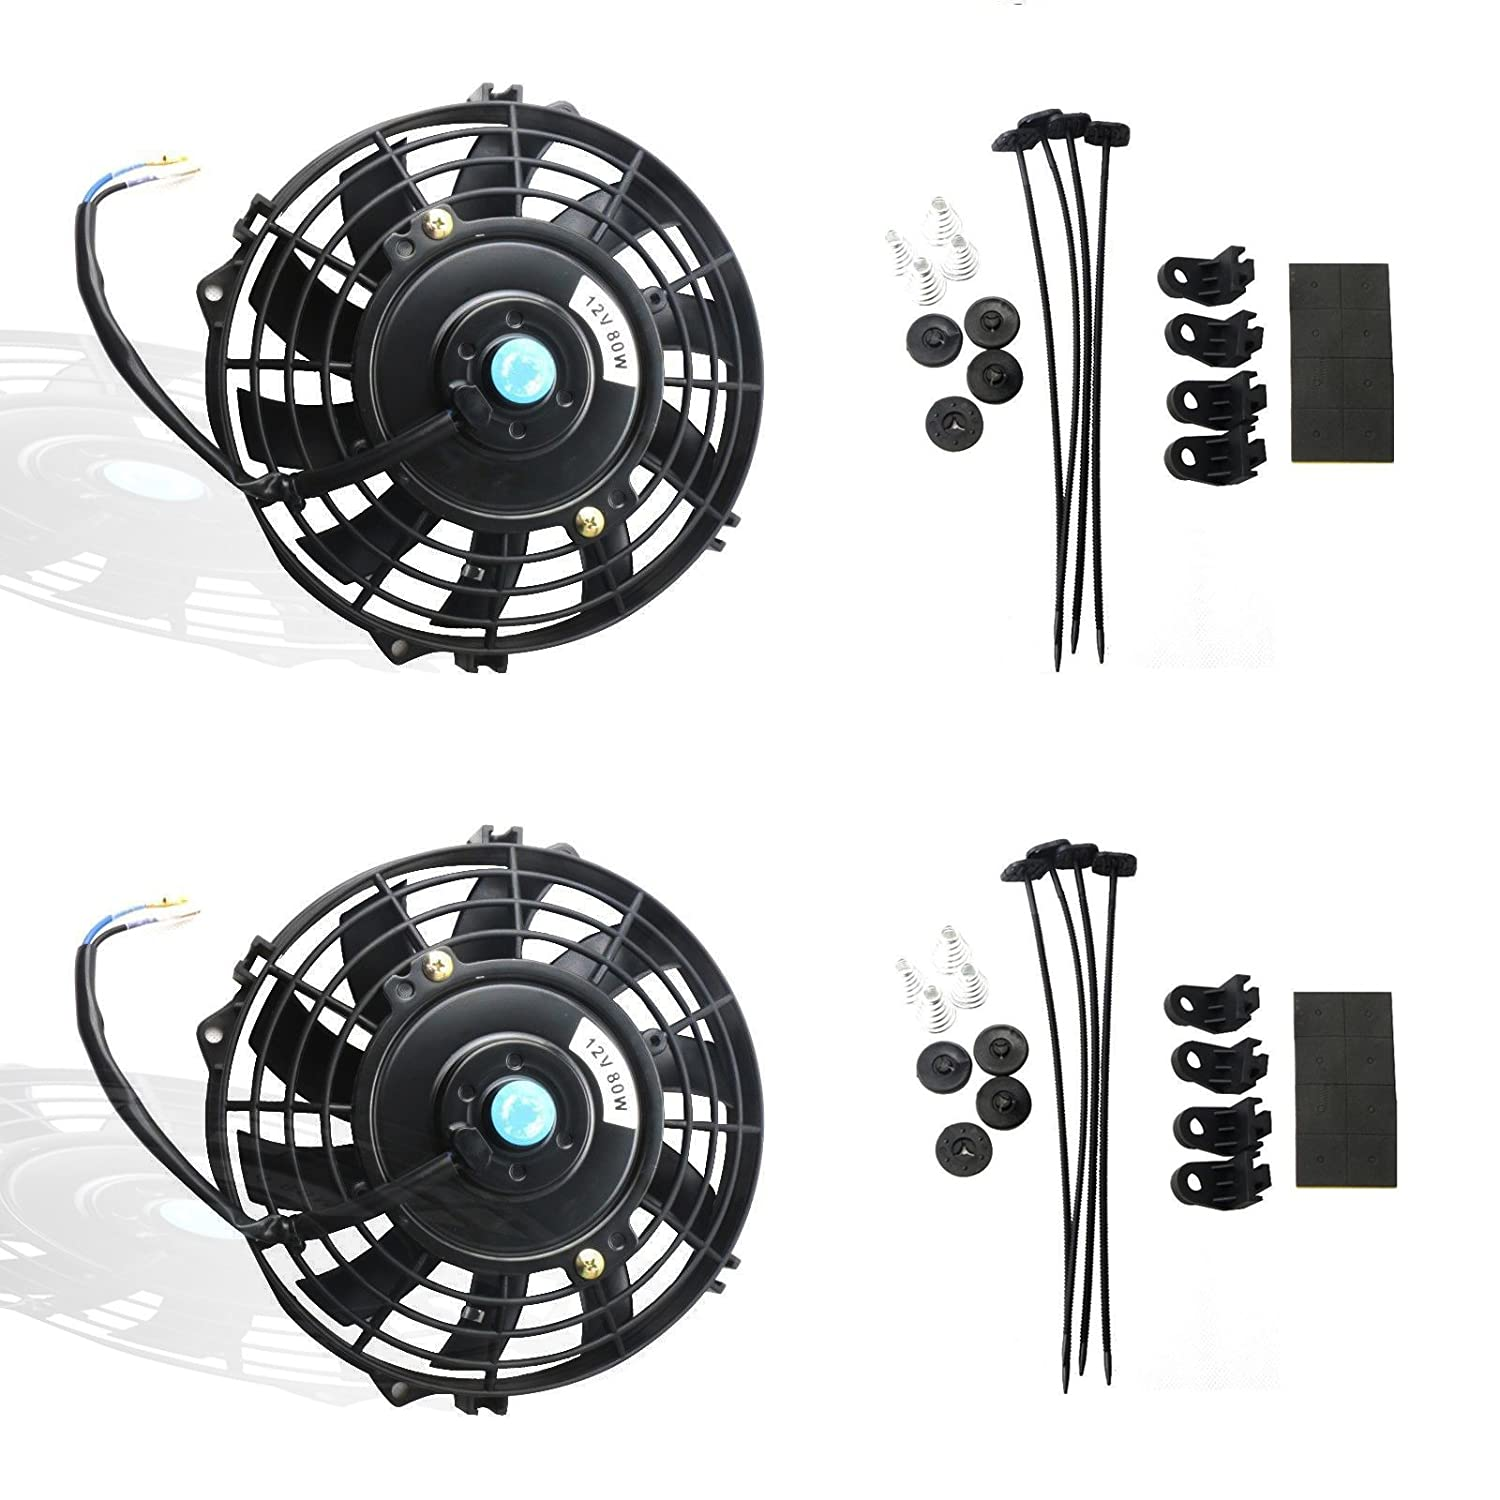 MOSTPLUS Black Universal Electric Radiator Slim Fan Push/Pull 12V + Mounting Kit(7 Inch) Set of 2